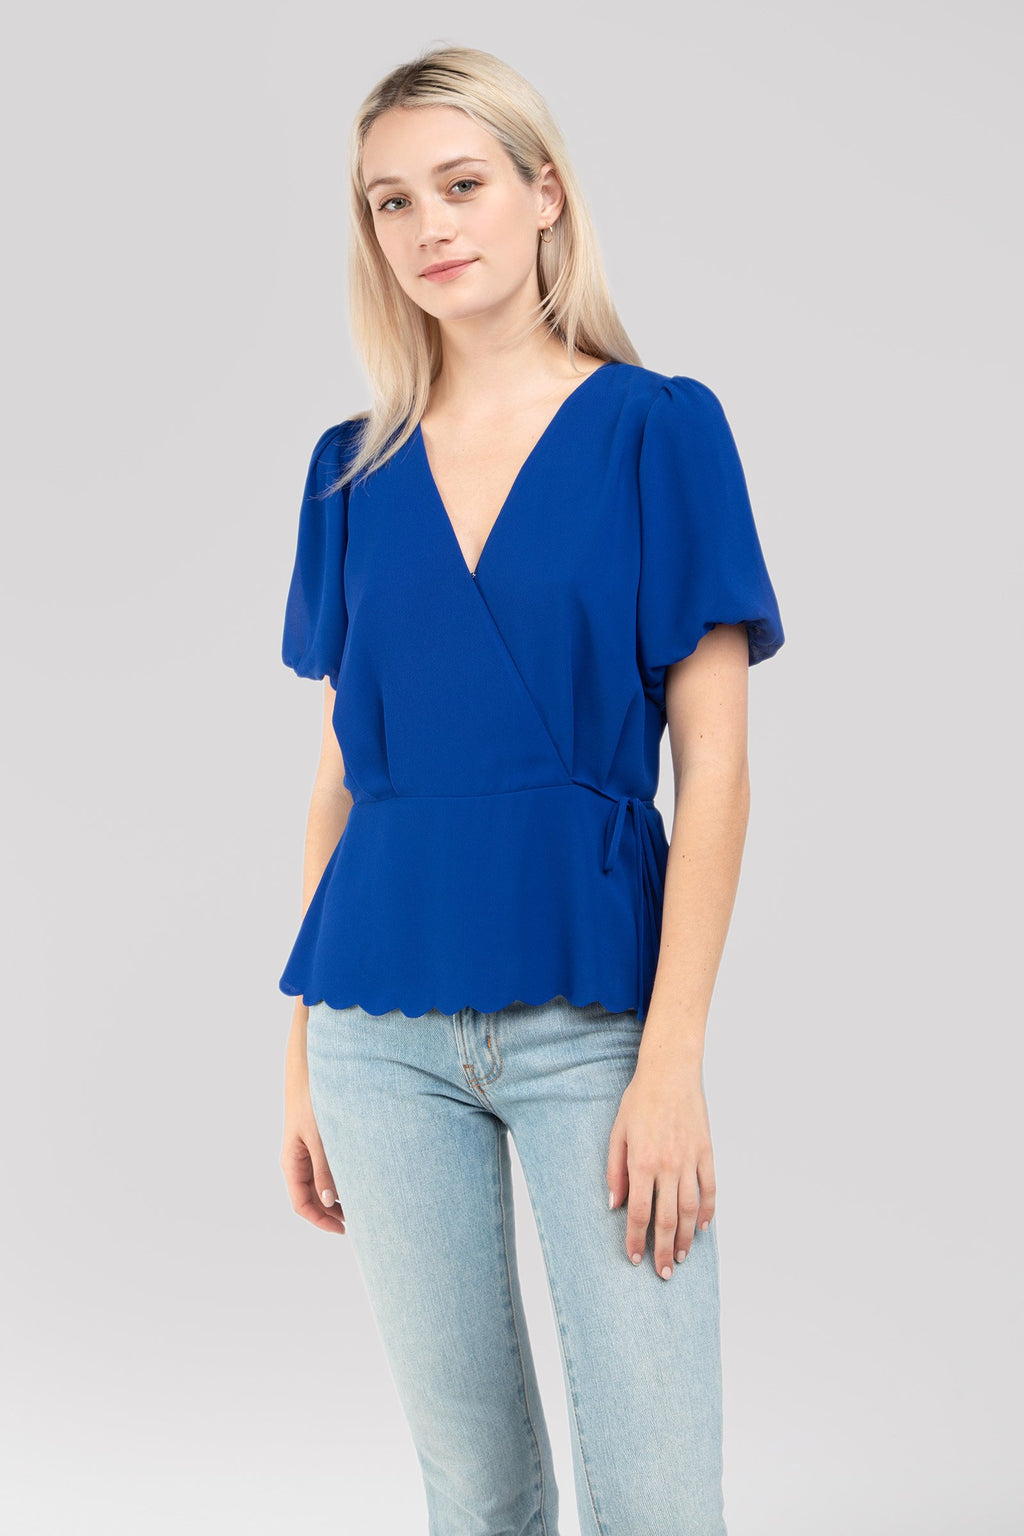 LAST CALL SIZE S | Short Sleeve Scalloped Hem Blouse in Sapphire Blue